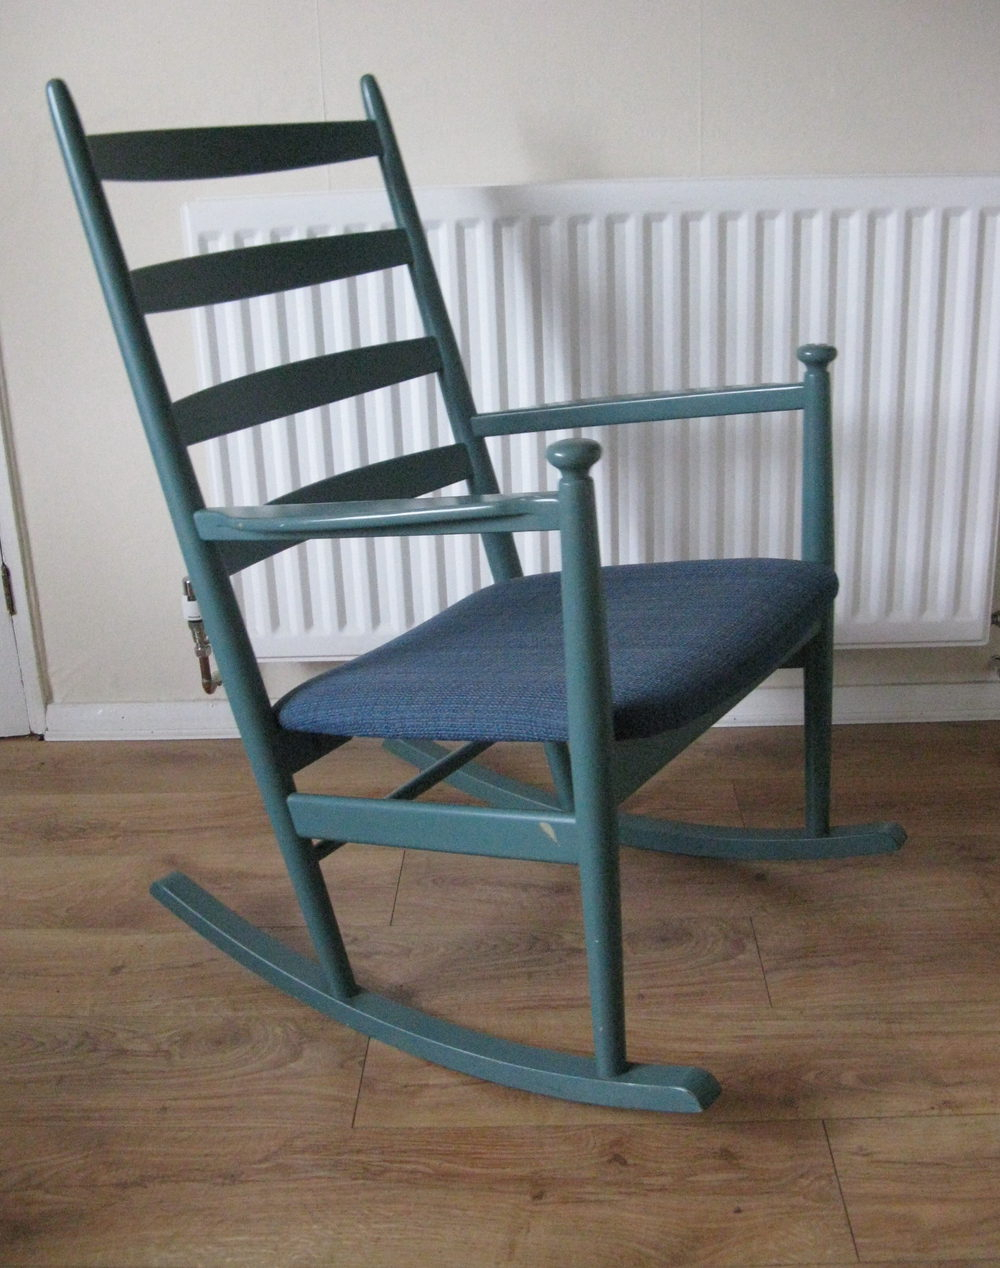 Antiques Atlas – Retro Danish Rocking Chair Niels Eilersen Regarding Liverpool Classic Style Rocking Chairs In Antique Oak Finish (#5 of 20)